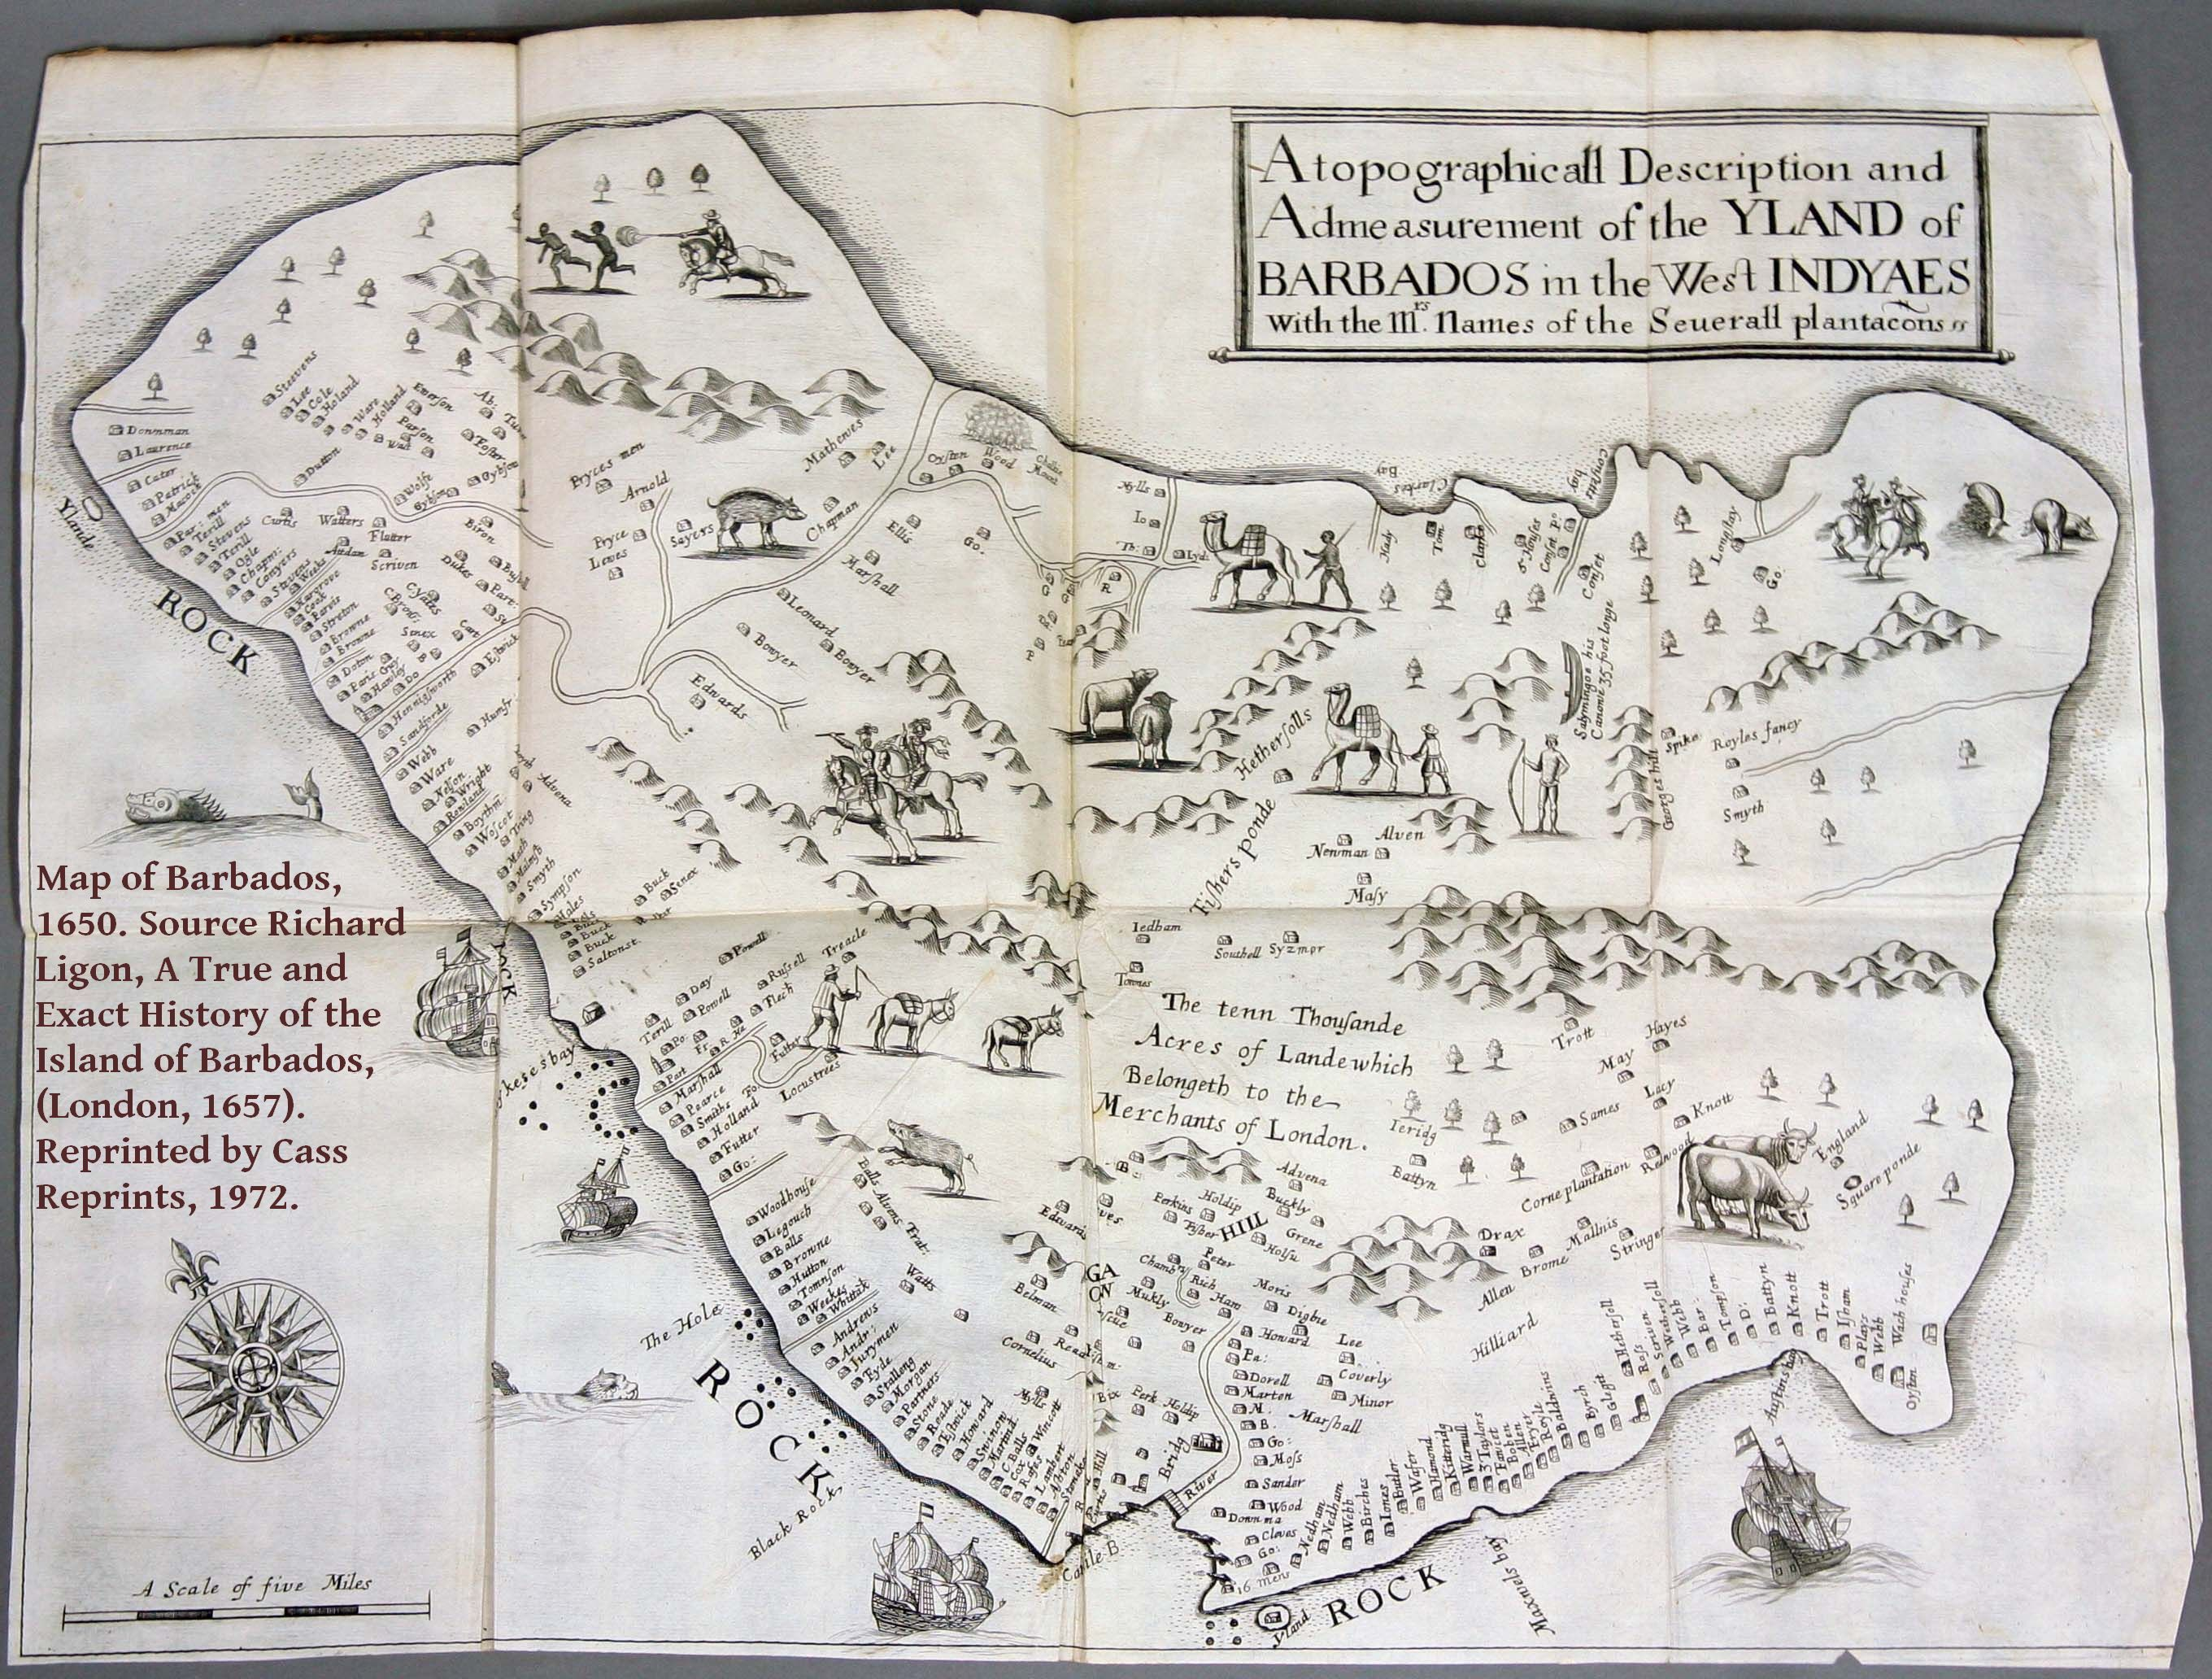 map-of-barbados-1650-source-richard-ligon